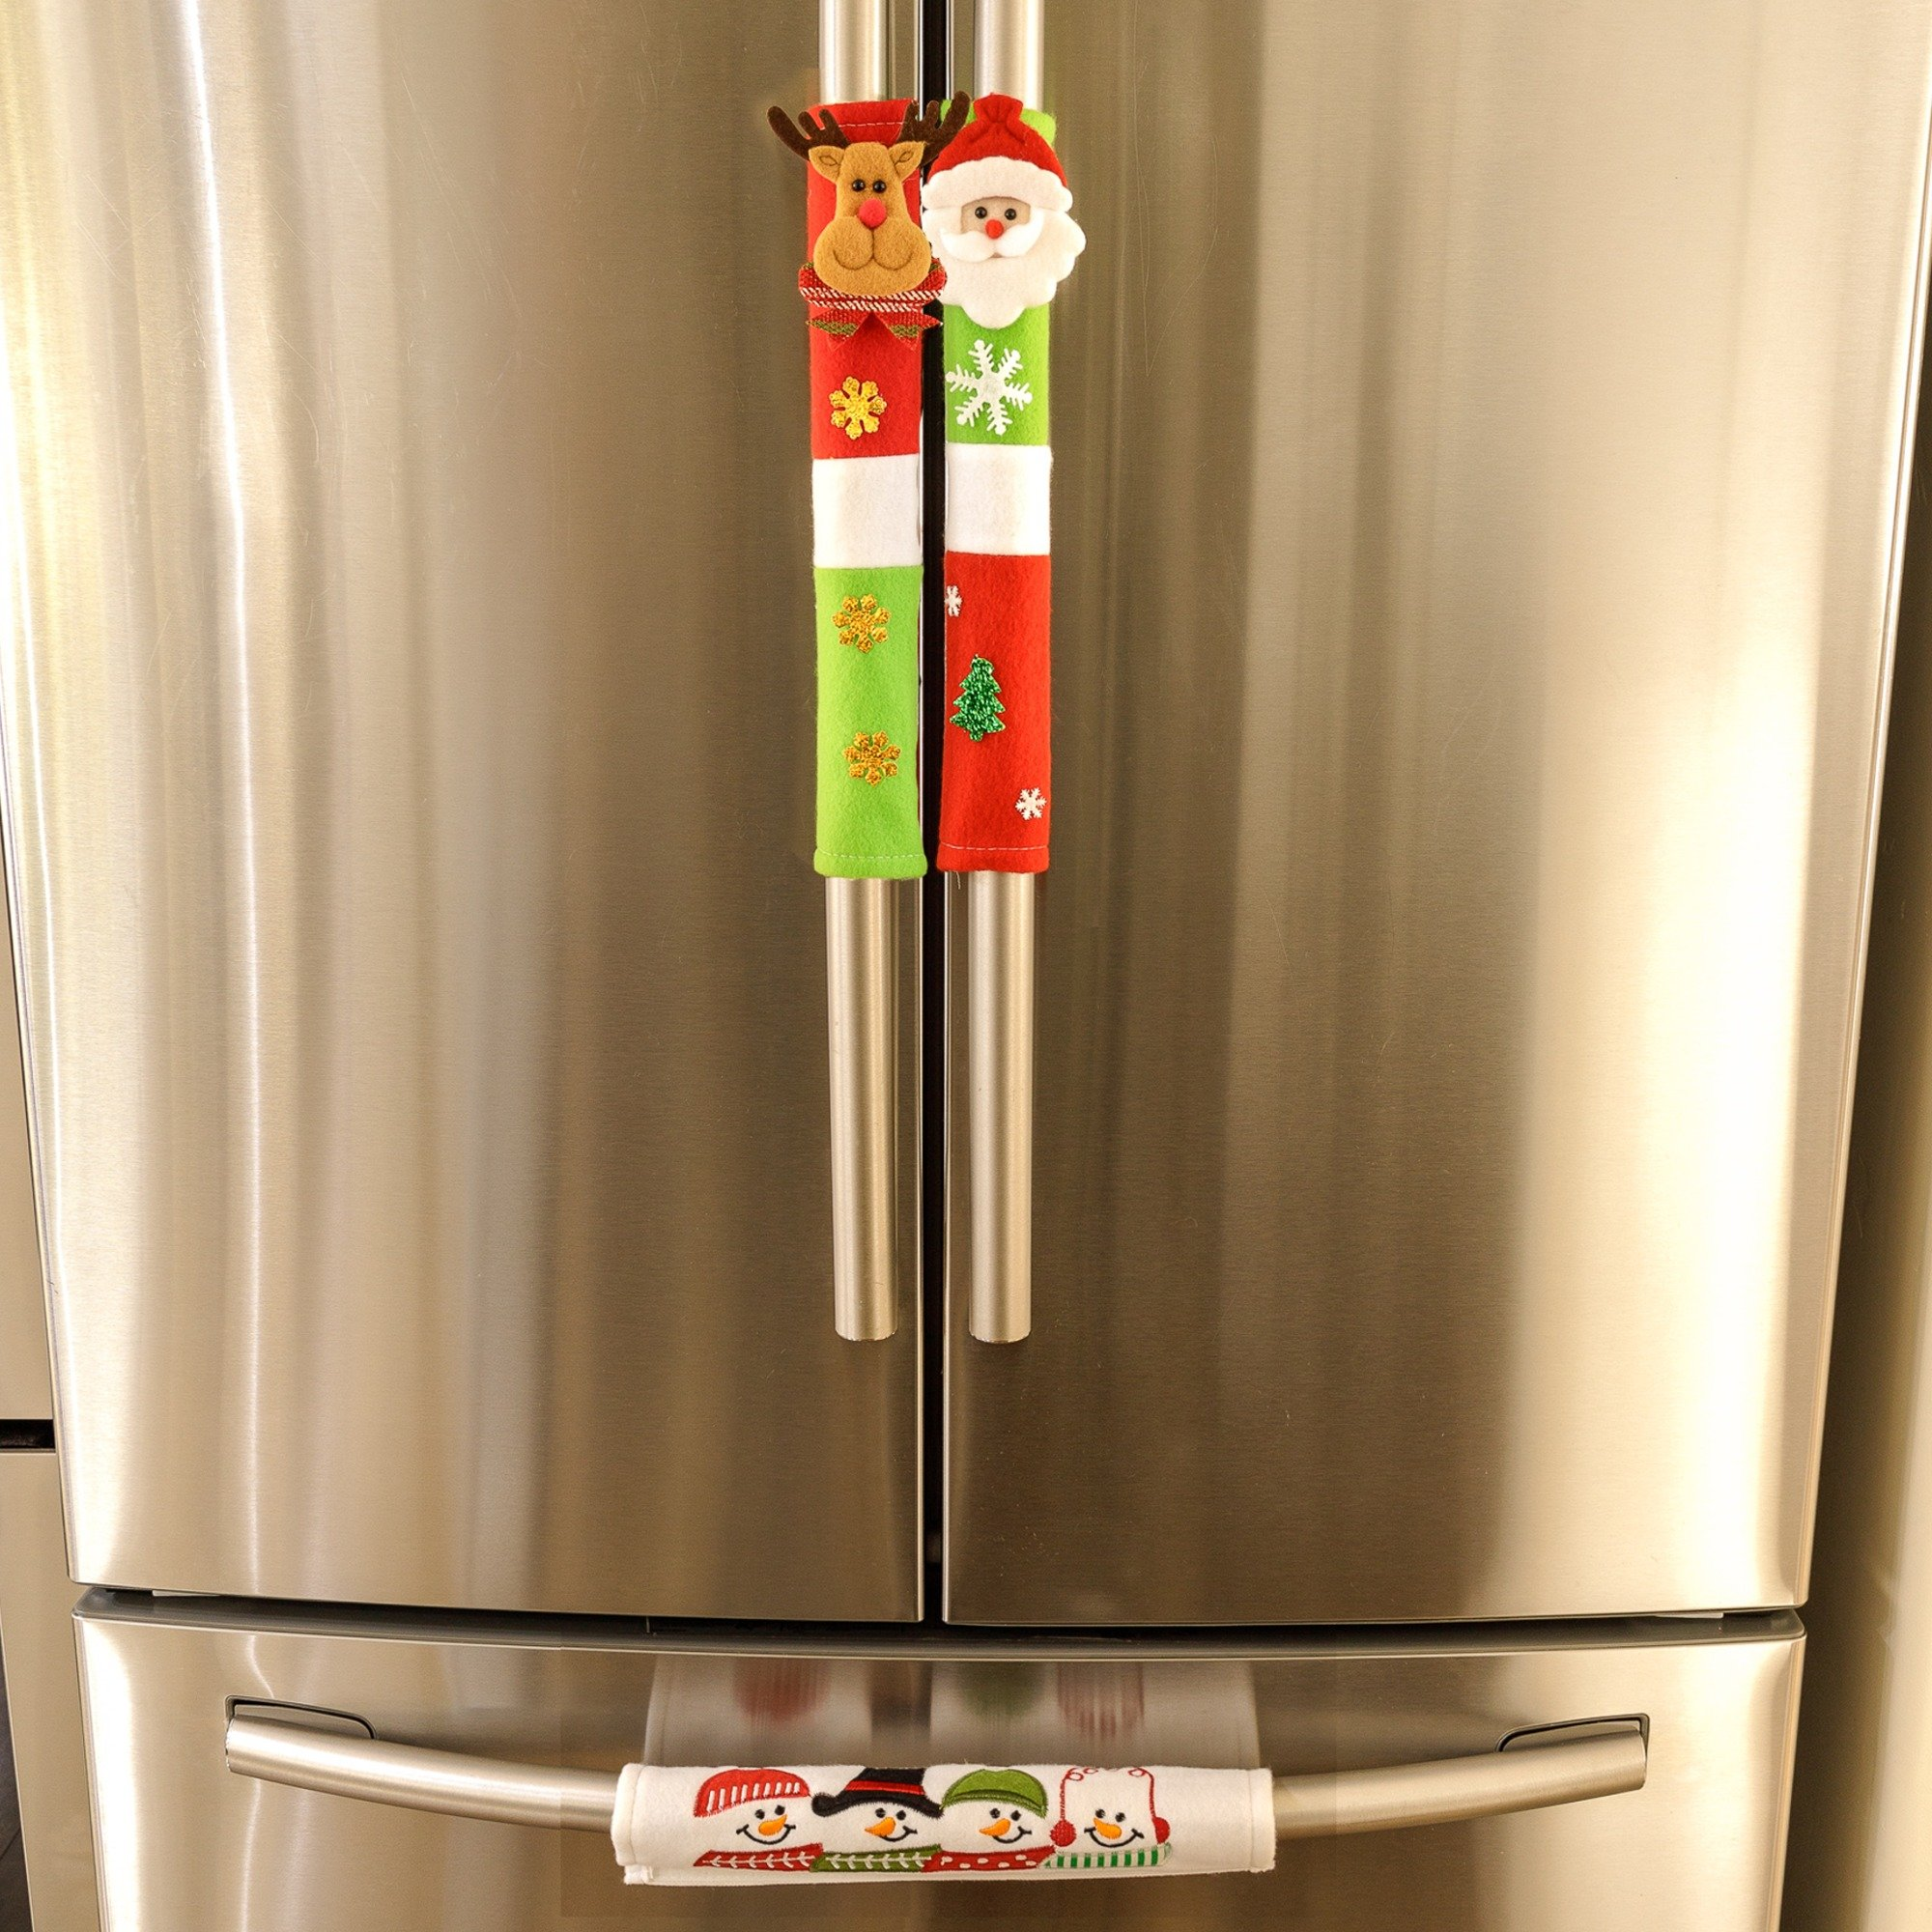 Christmas Handle Cover - 3 Count - Attach To Any Handle - Velcro Wrap - Easy To Attach/Remove - Santa, Reindeer, Snowmen, Xmas Tree, Snow Flake Designs - Fun Xmas With Christmas Decorations For Home